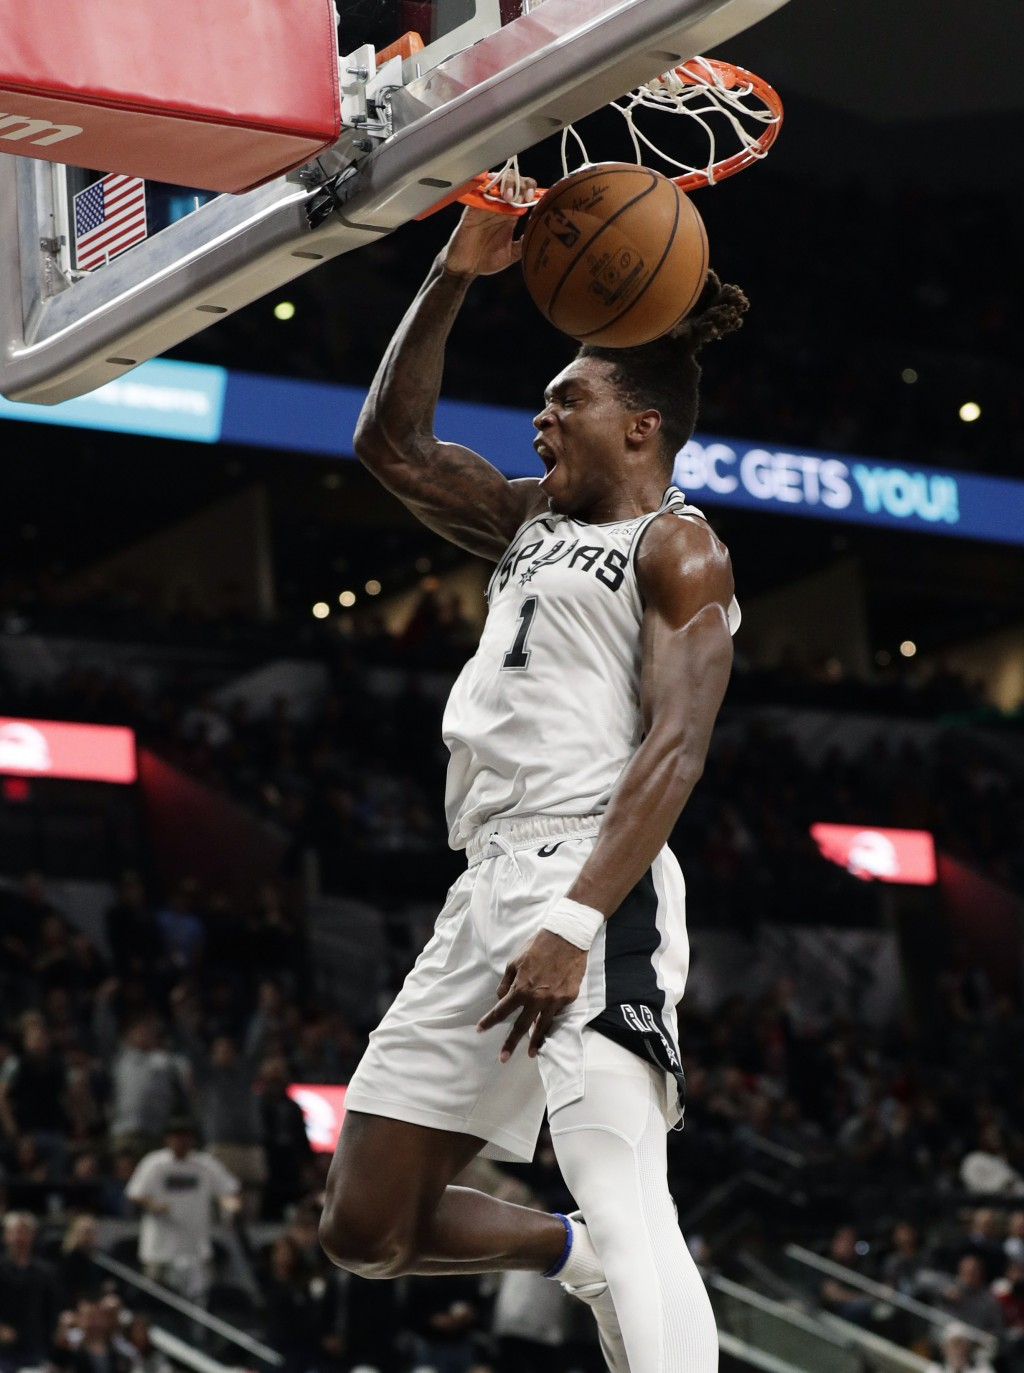 San Antonio Spurs guard Lonnie Walker IV dunks against the Houston Rockets during the second half of an NBA basketball game in San Antonio, Tuesday, D...